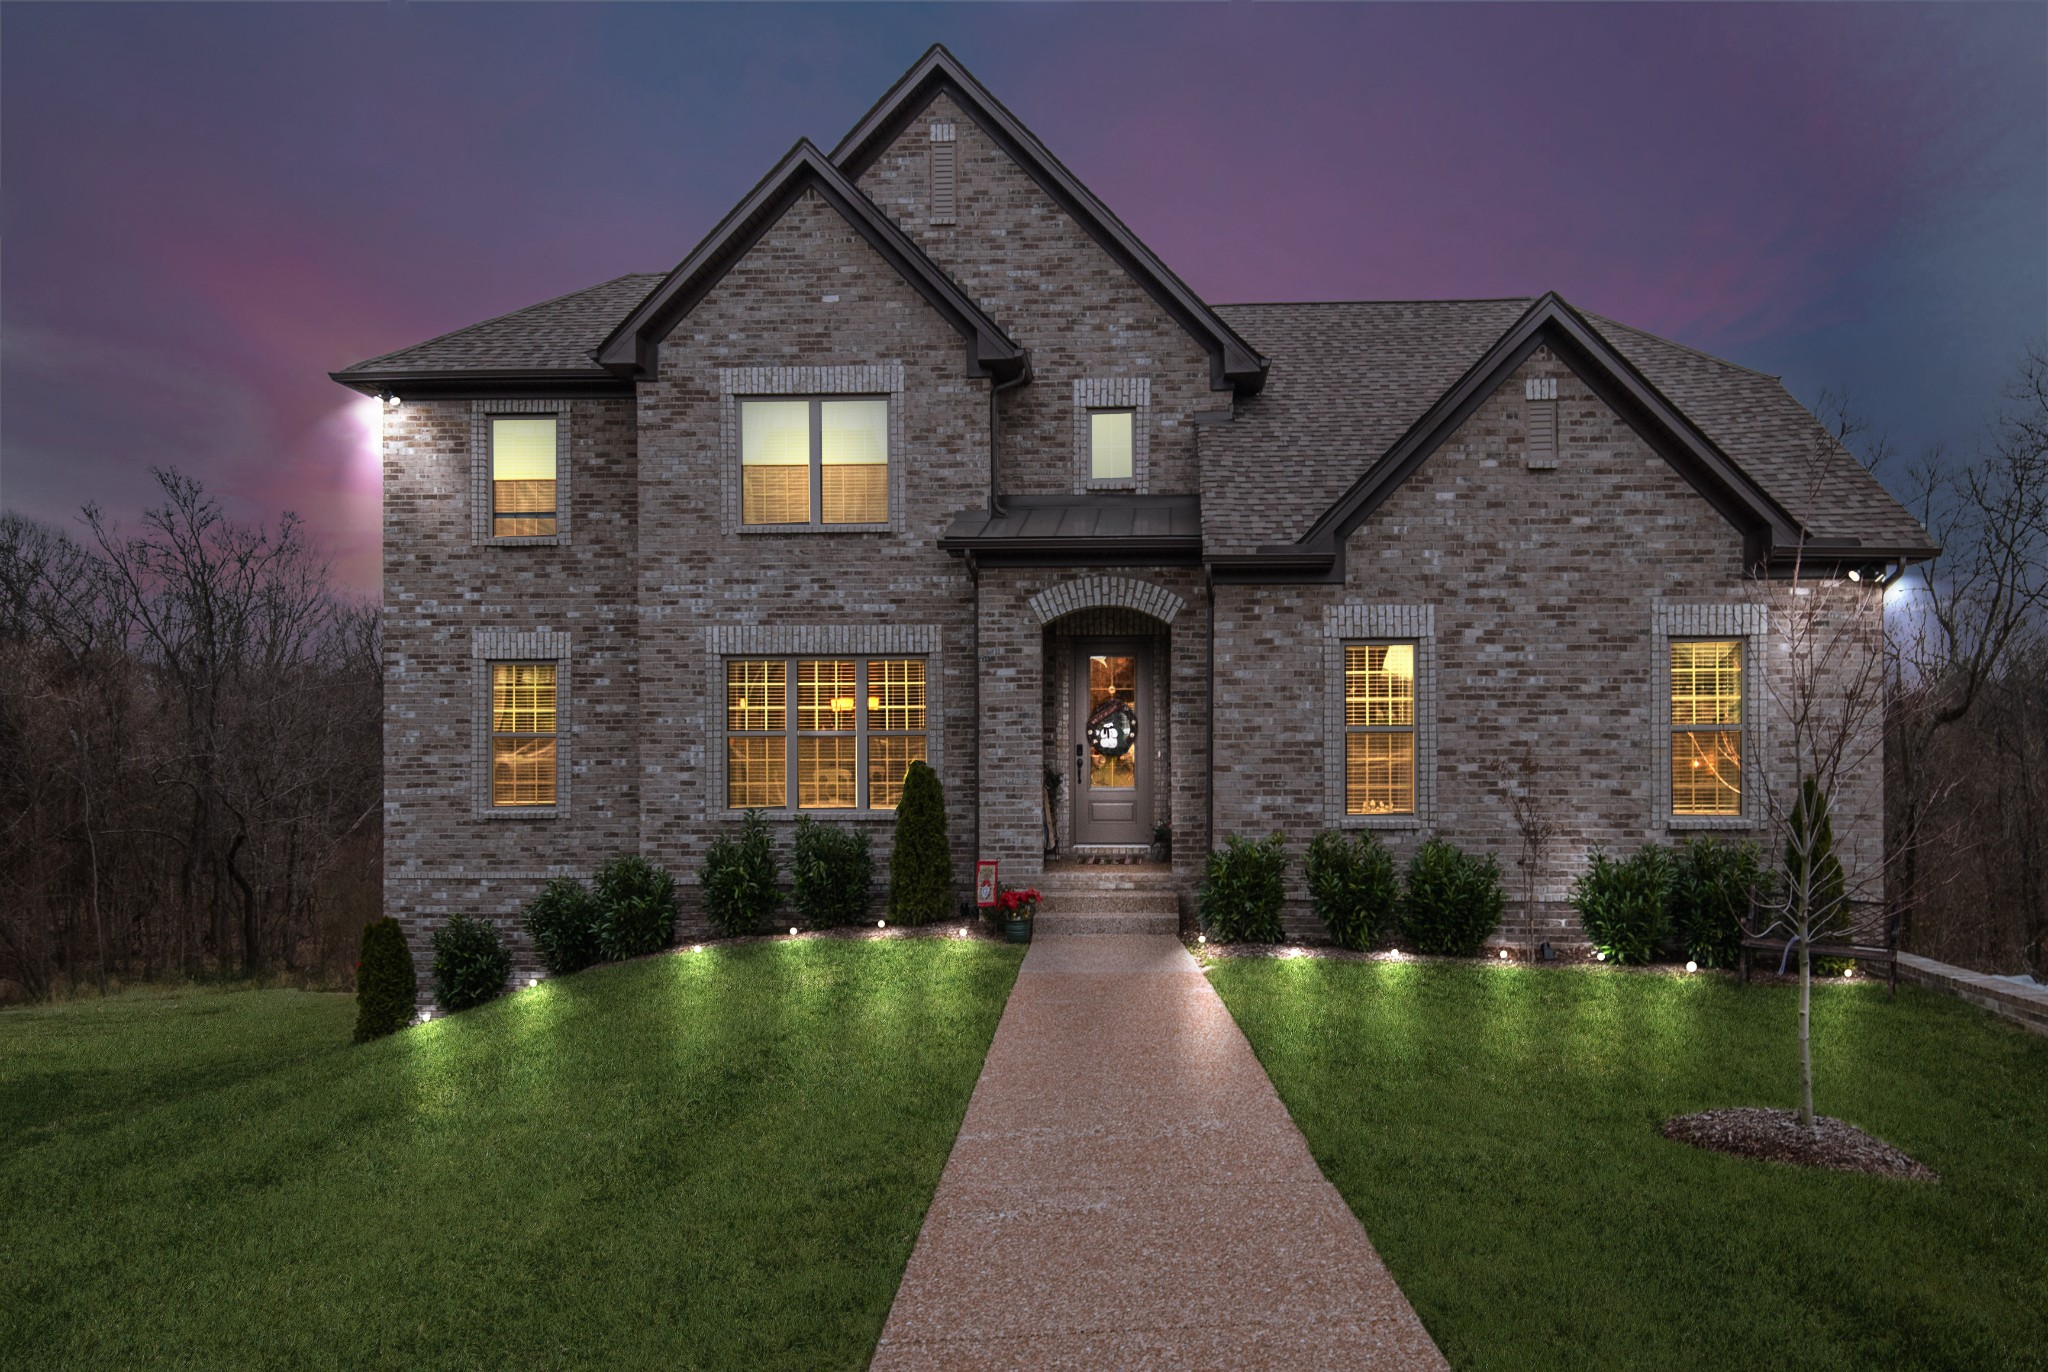 $550,000 - 6Br/5Ba -  for Sale in Tower Hill, Hendersonville